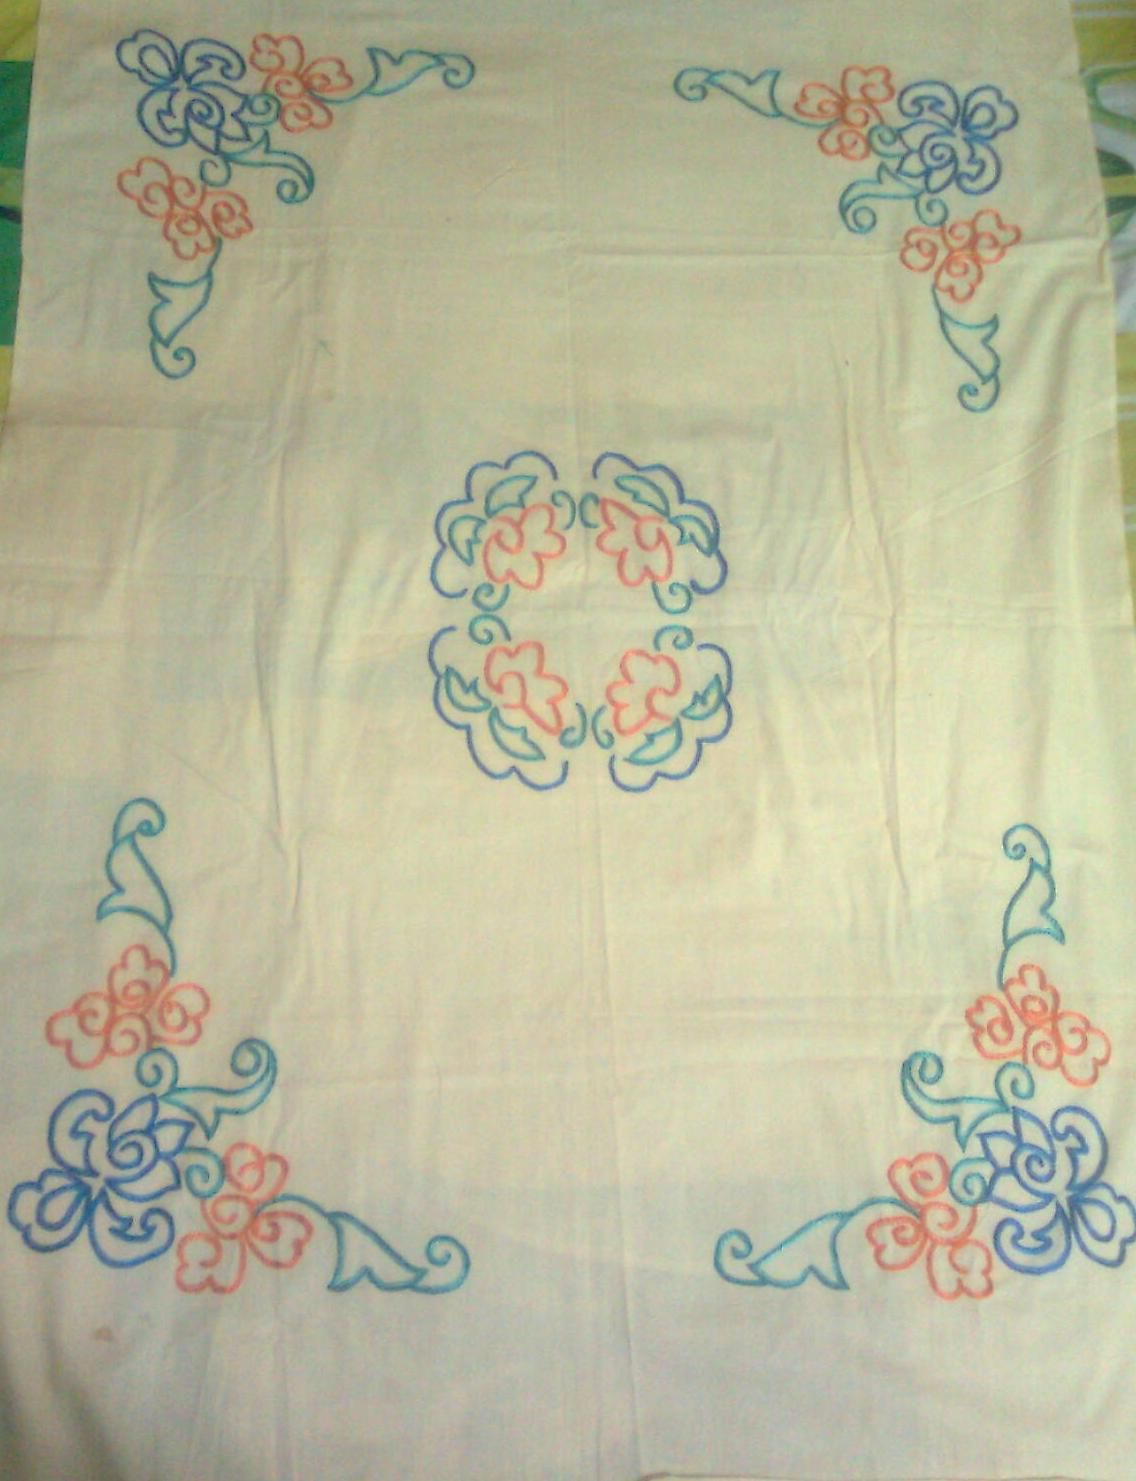 Outline embroidery designs for tablecloth - This Hand Embroidered Table Cloth Pattern Done With Only Chain Stitch You Can Observe There Are Two Lines Of Chain Stitch Is Used To Make The Outline